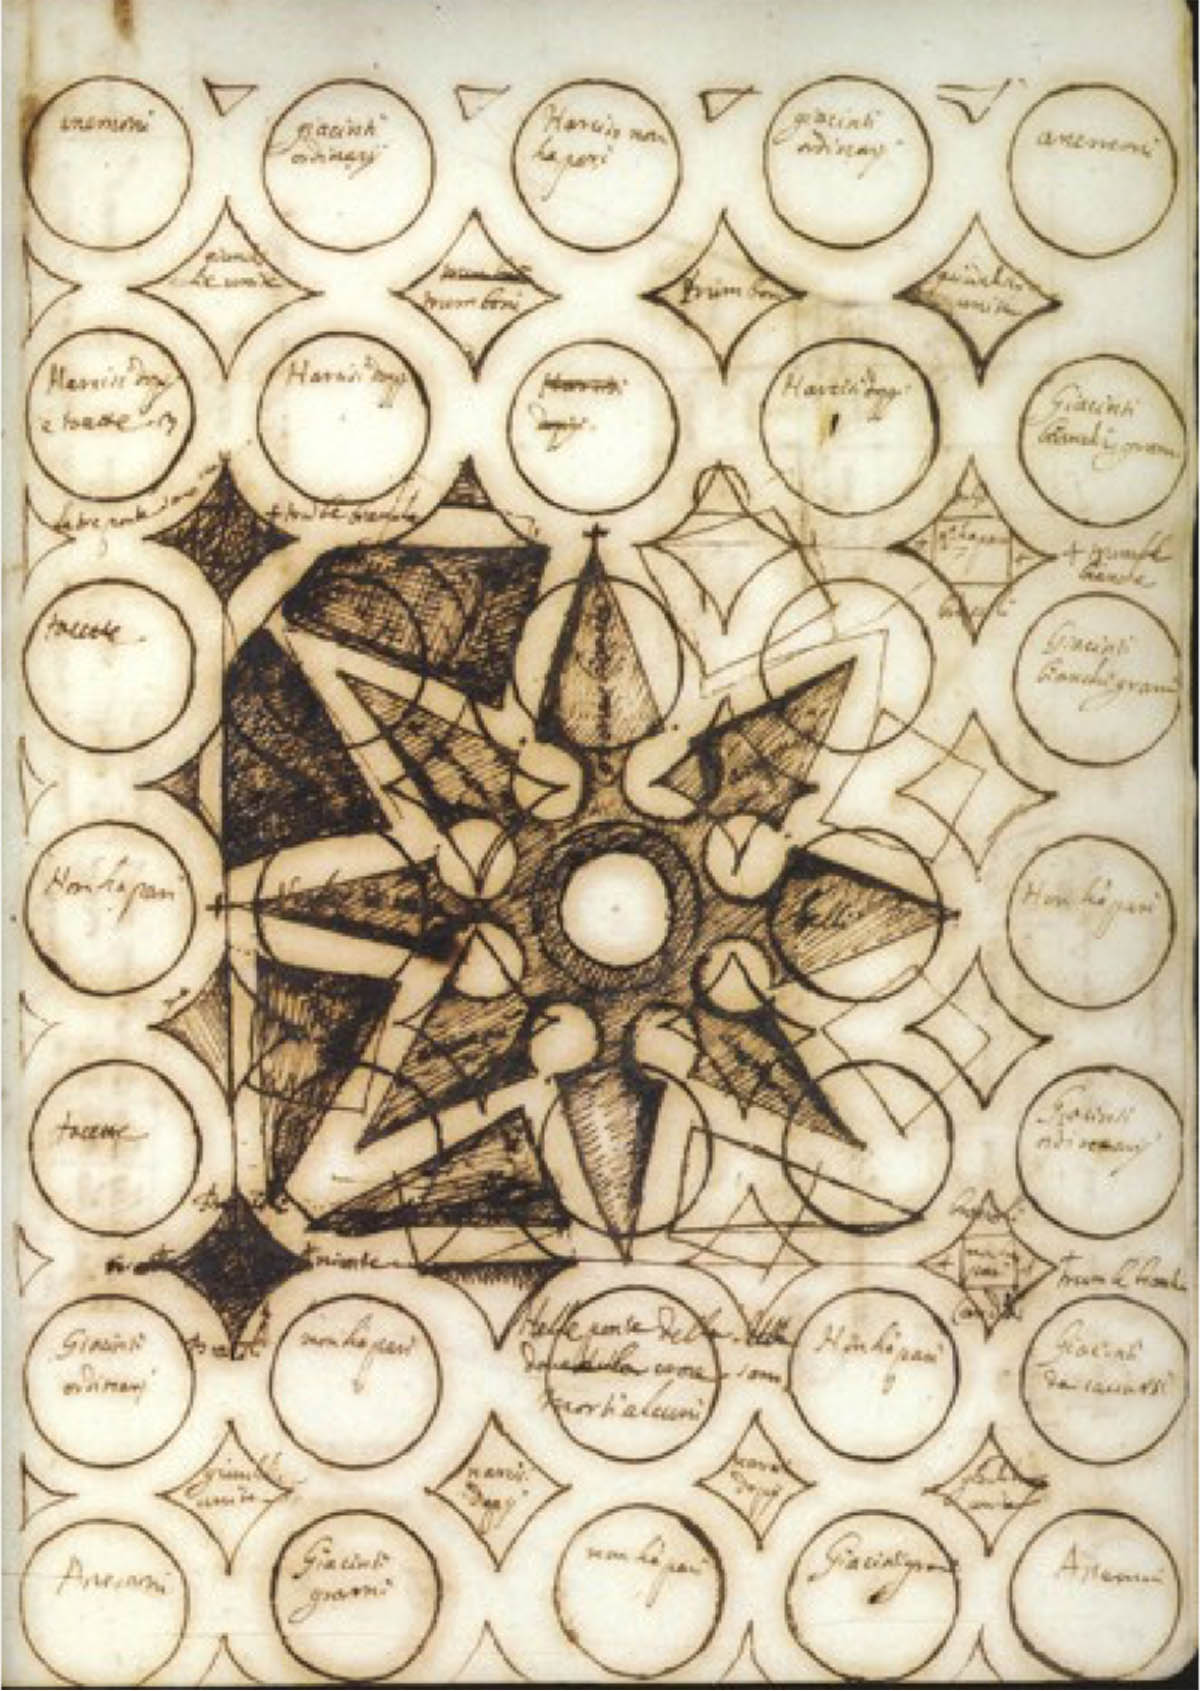 Sepia-colored plan for a garden, with many circles and a star-shaped center.